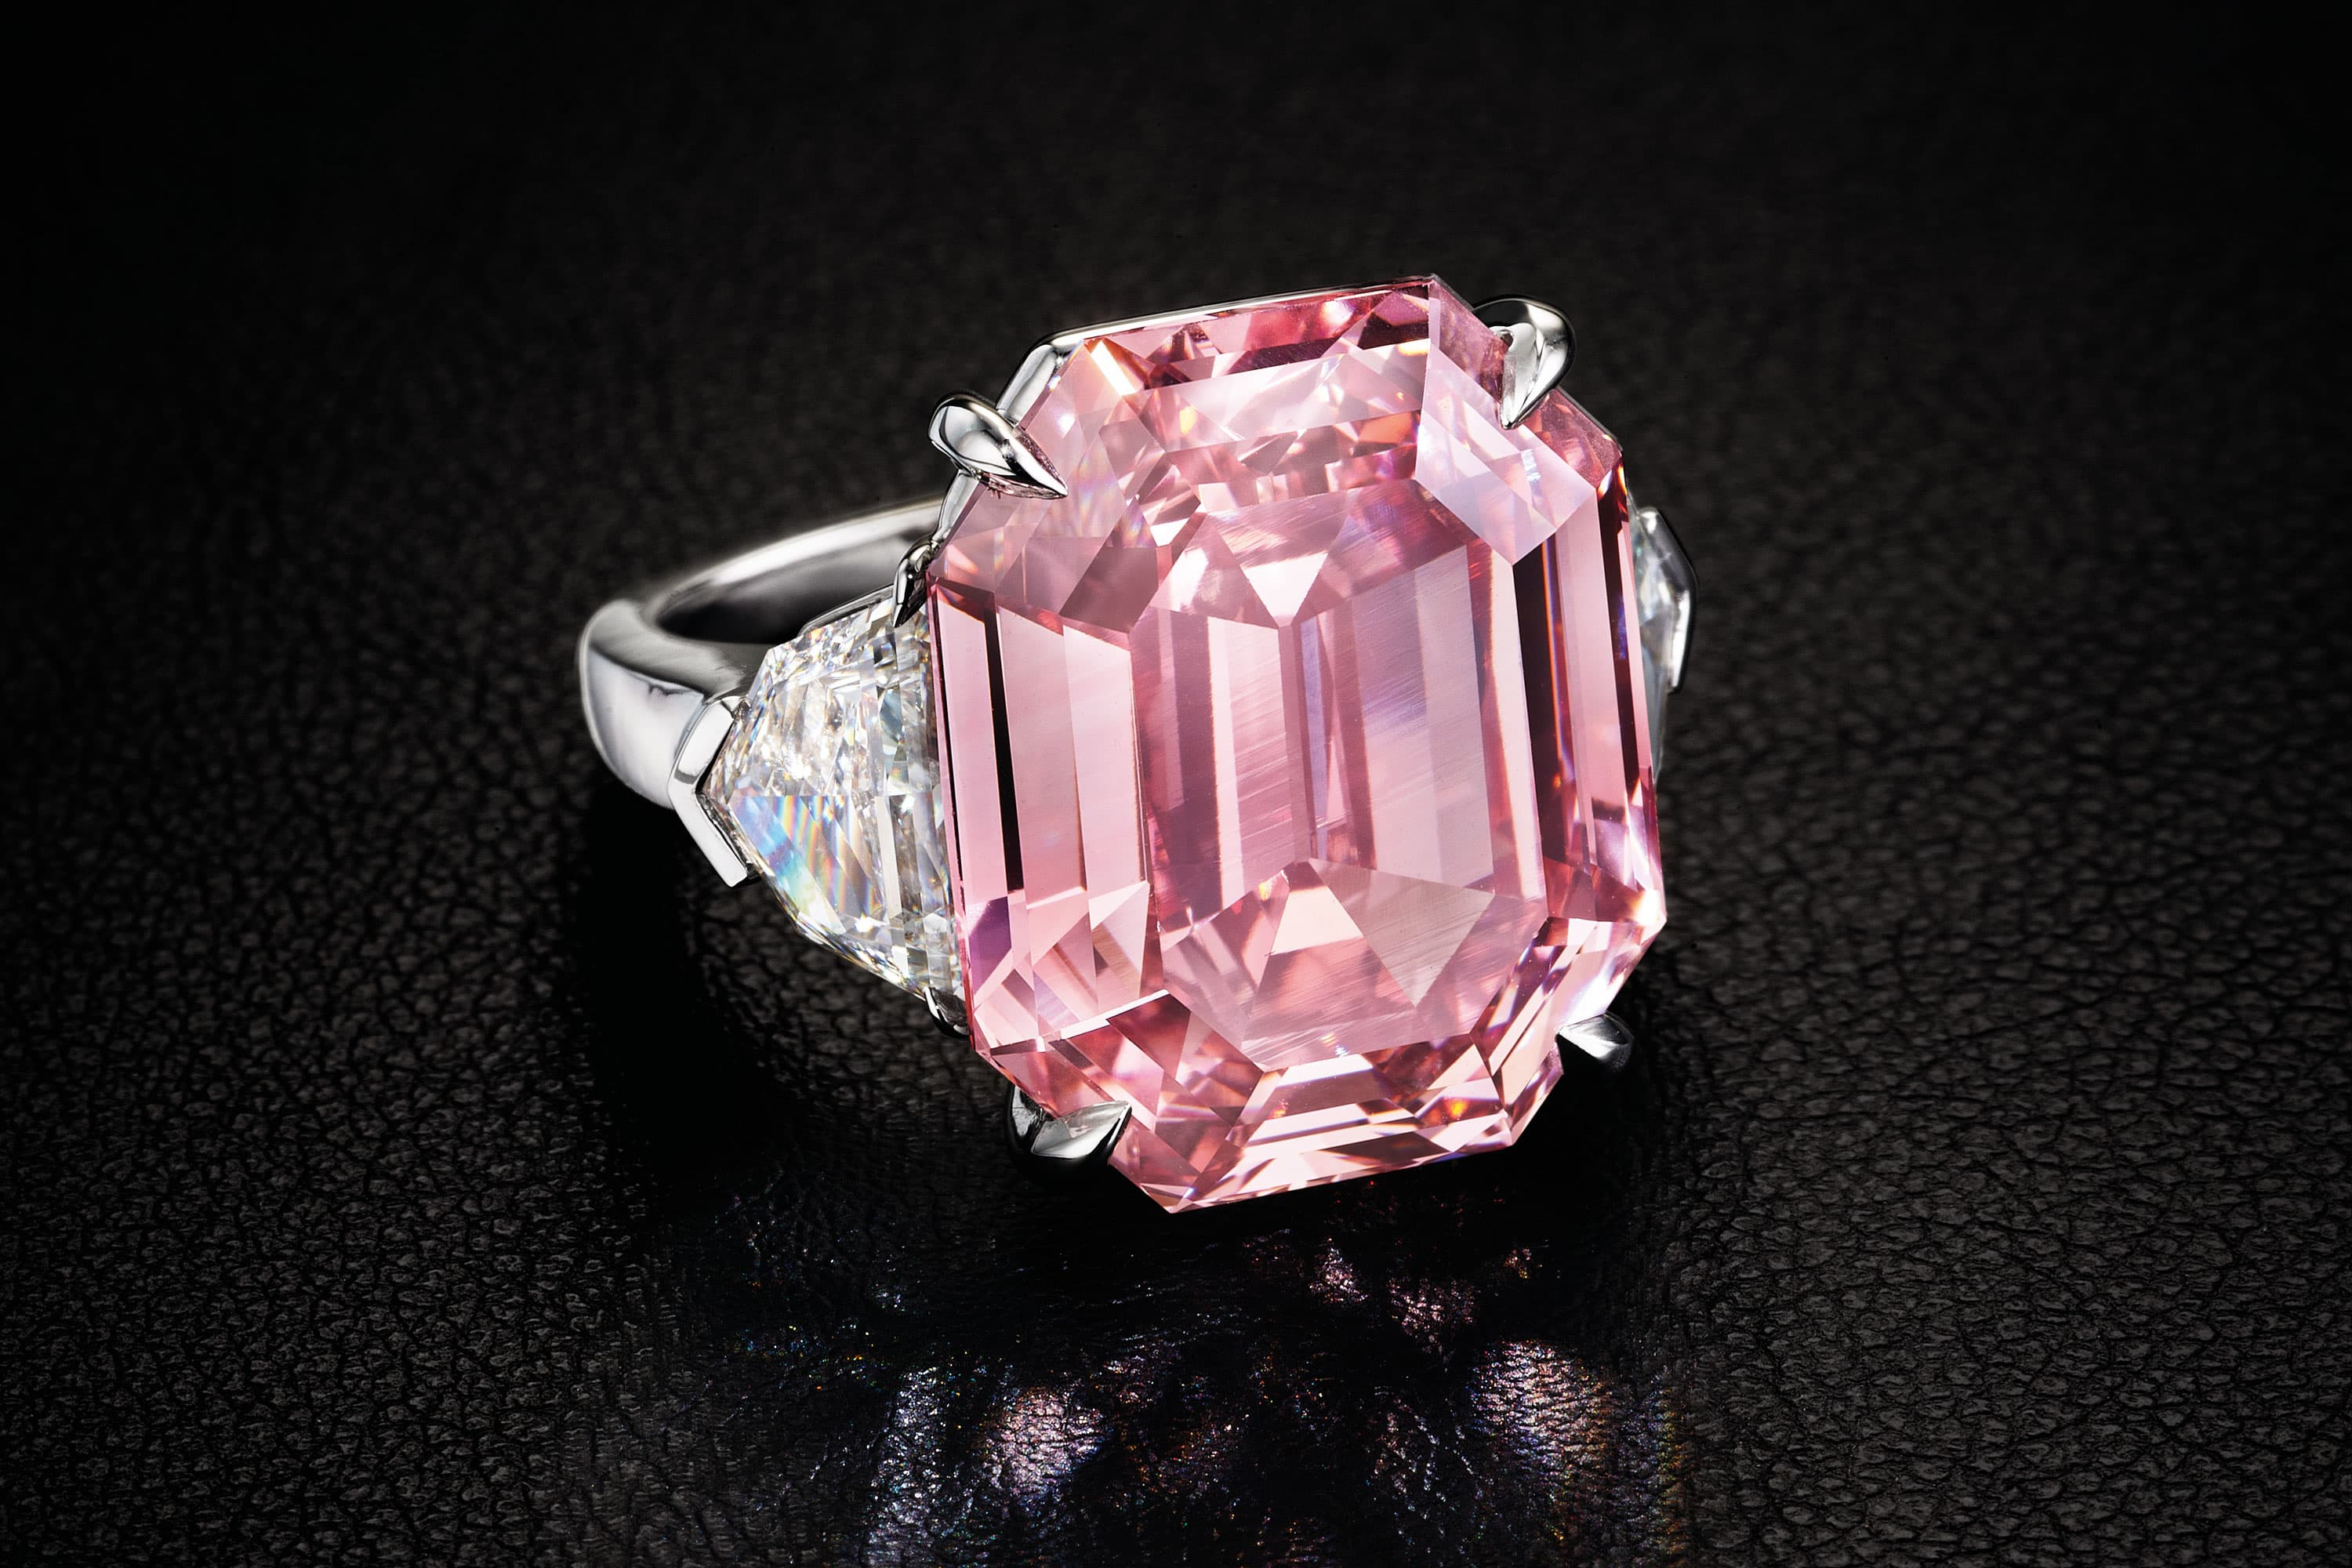 This 19 Carat Pink Legacy Diamond Could Fetch 50 Million